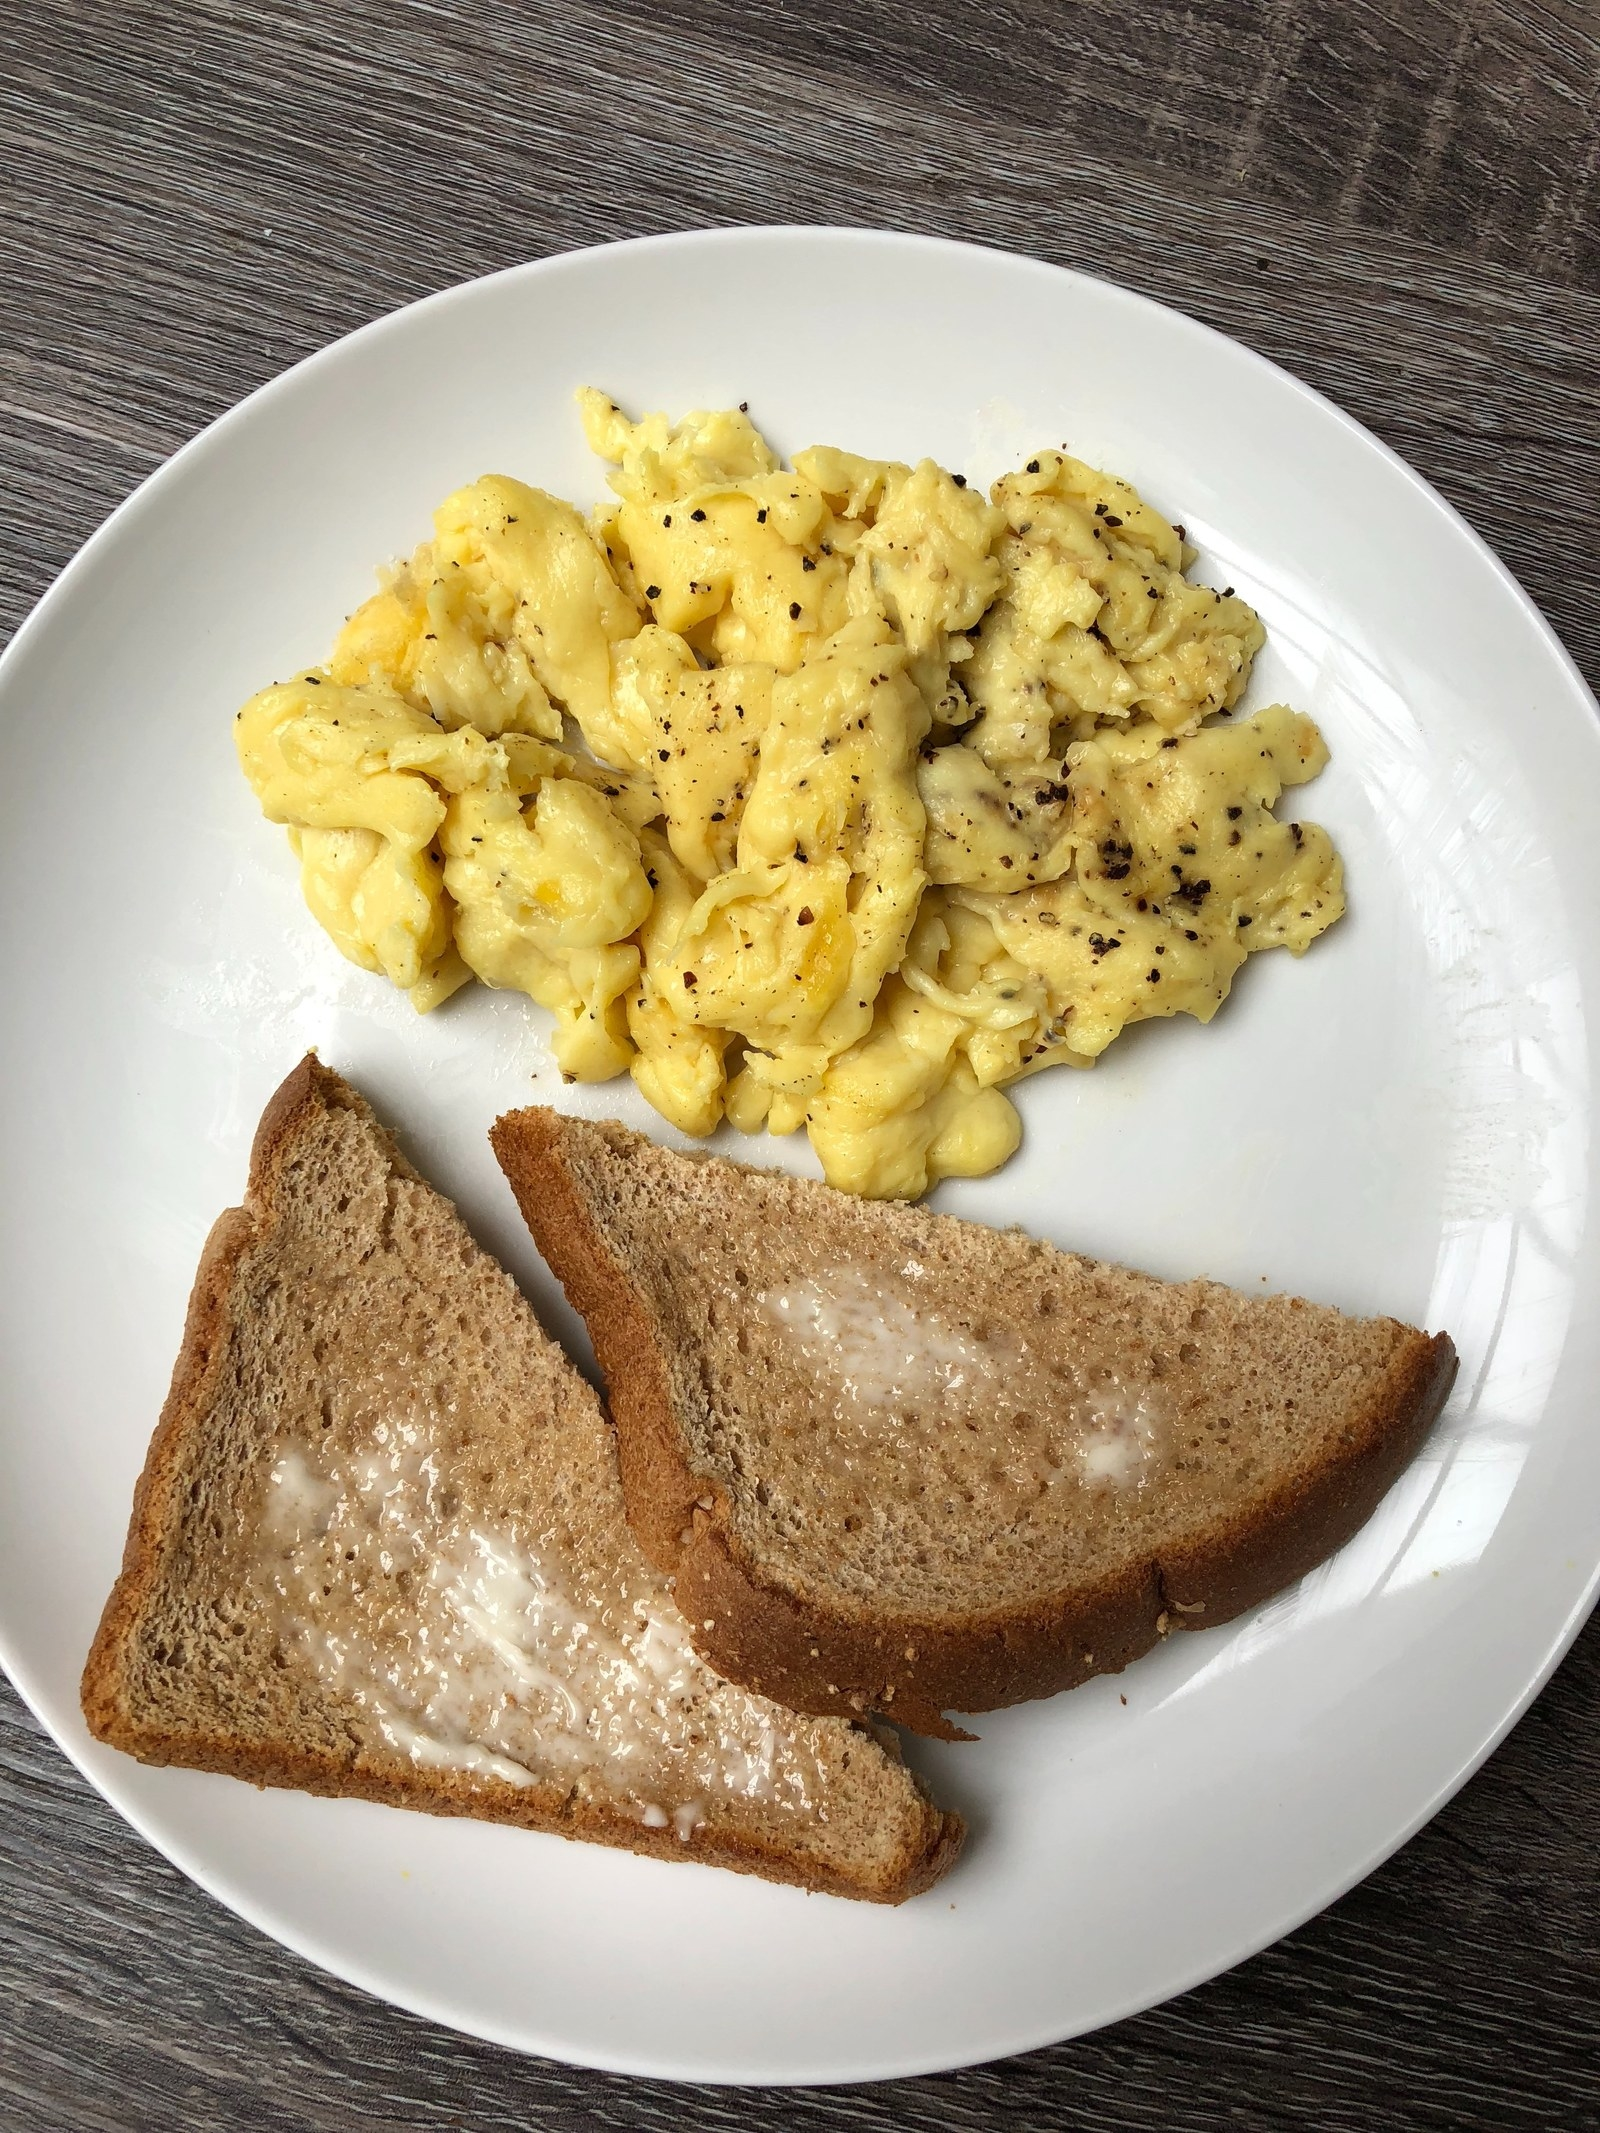 At this point, I'll admit, I was a little weirded out. I hadn't tasted the Just eggs yet, but I couldn't believe a legume could be cooked into this scrambled egg-like texture. If you handed me a plate of these without telling me they're vegan, I would never be able to guess.